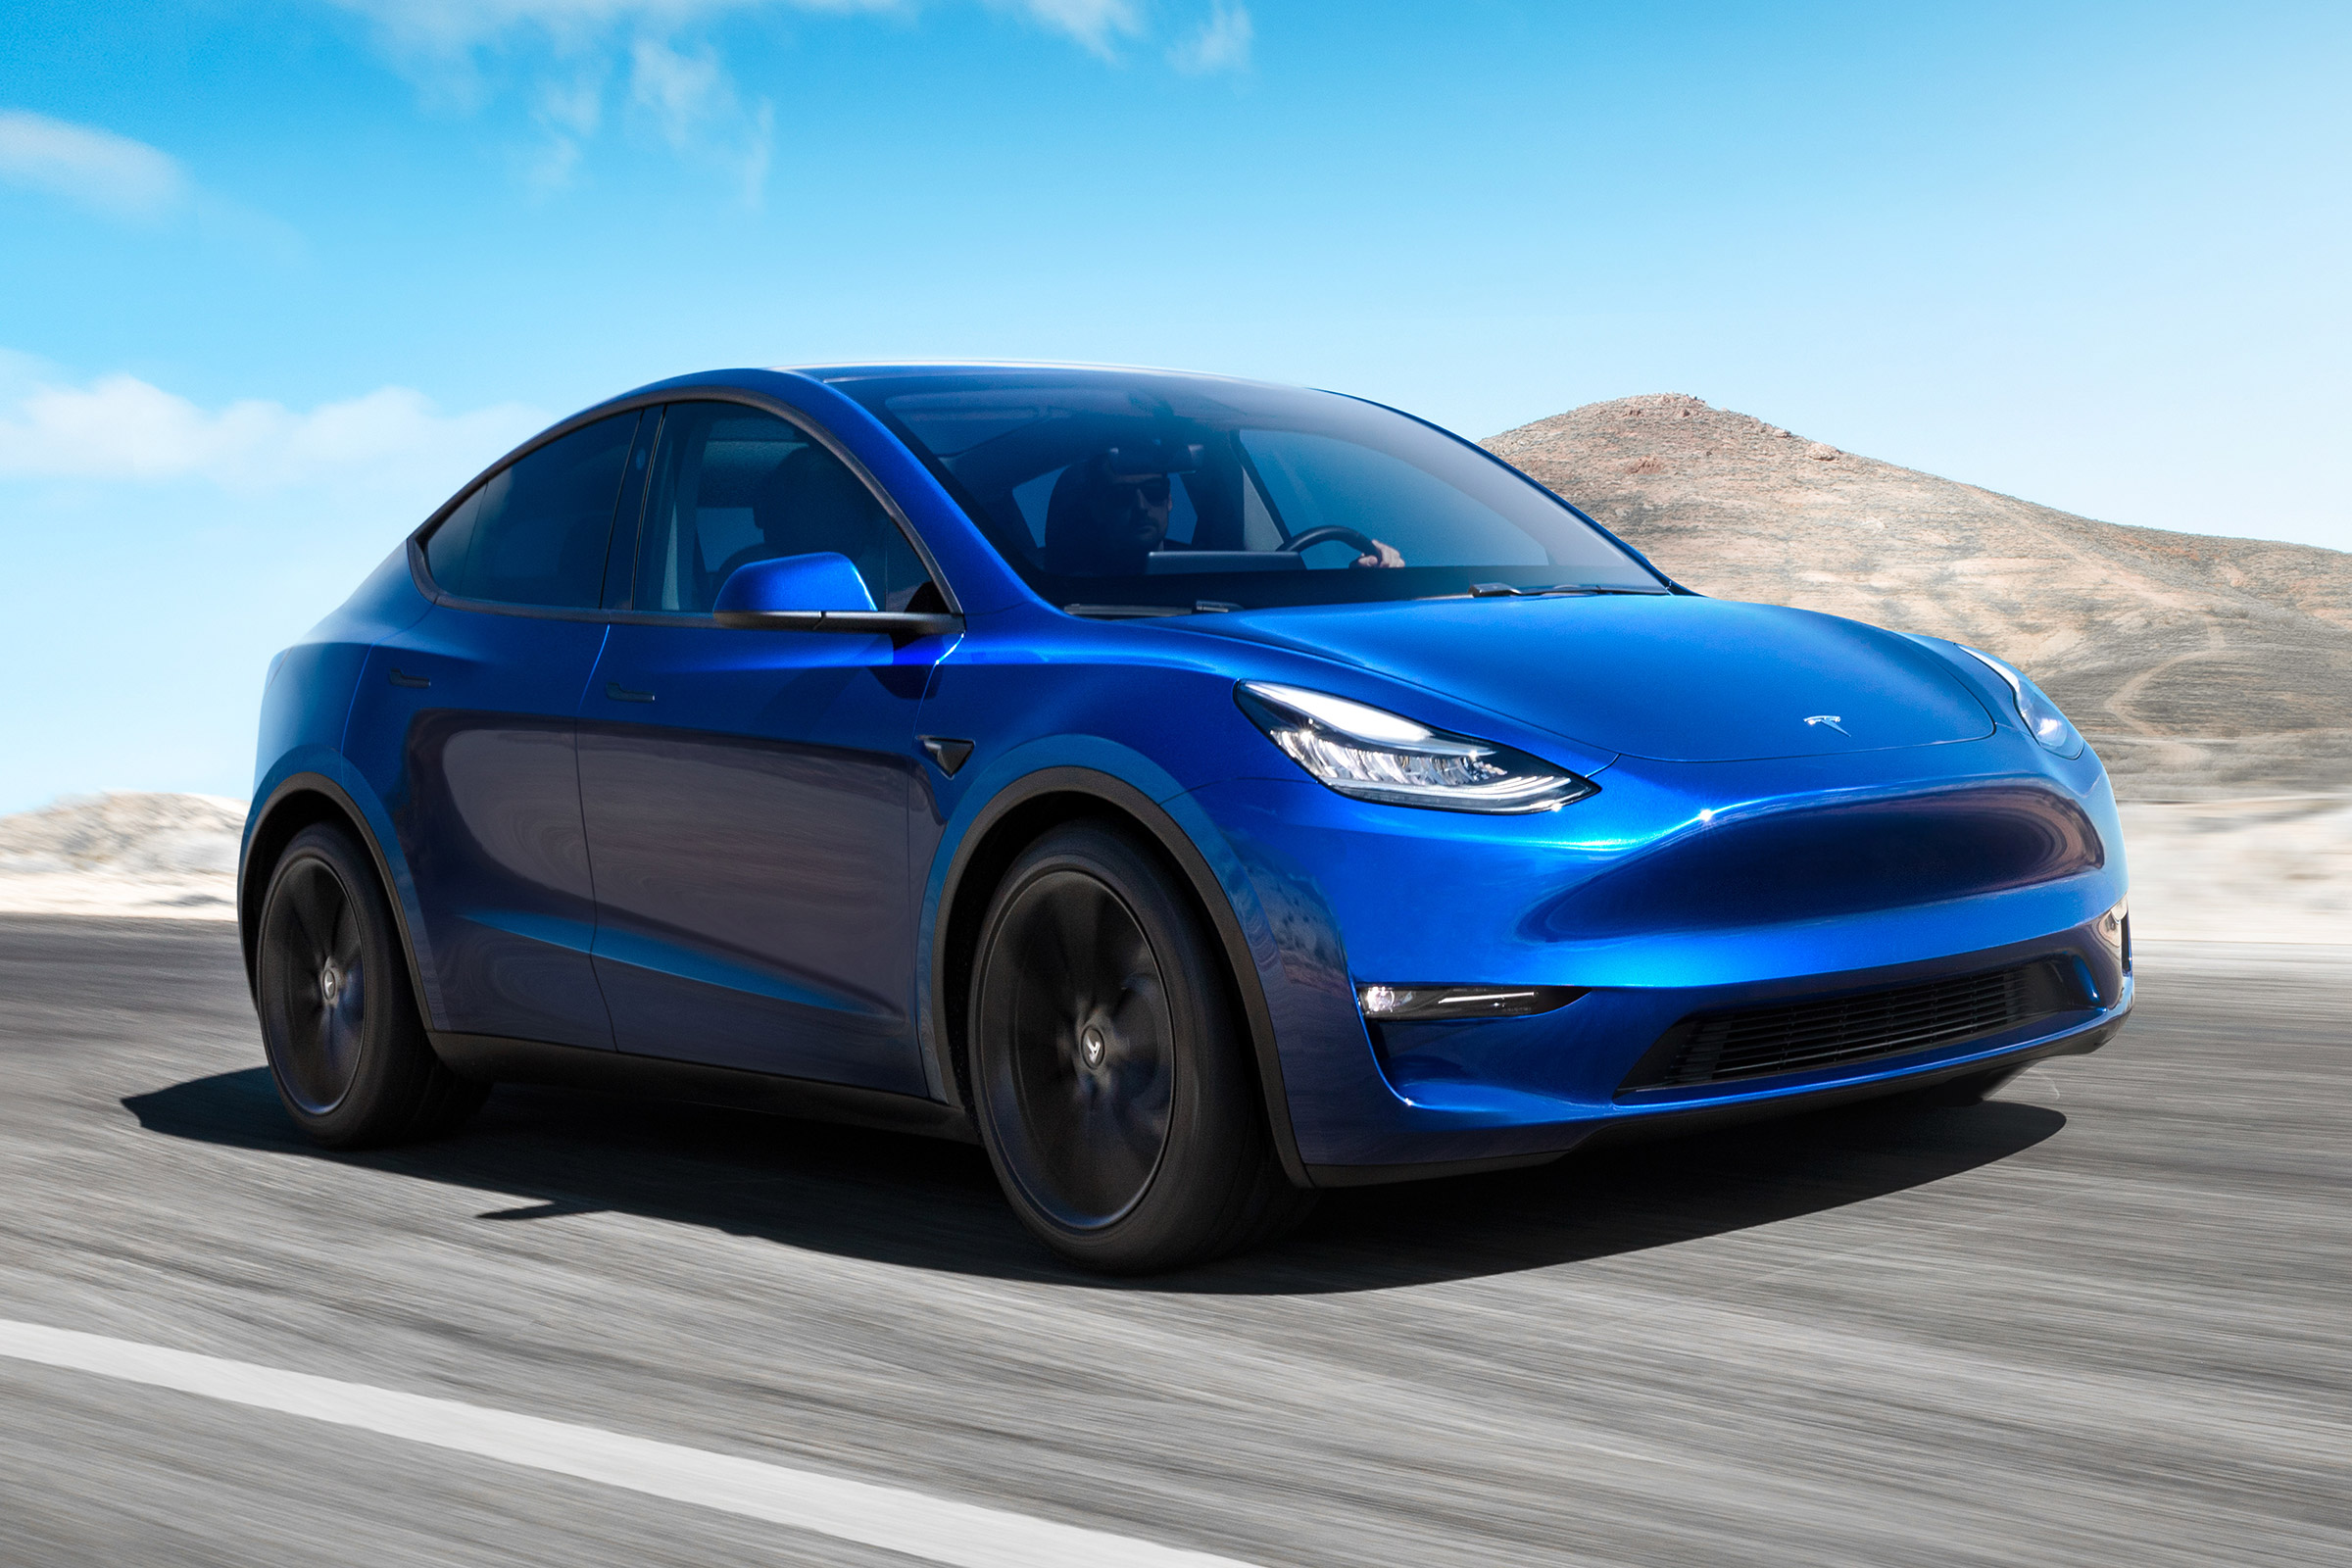 Tesla Increases Prices Again - Electric Car News